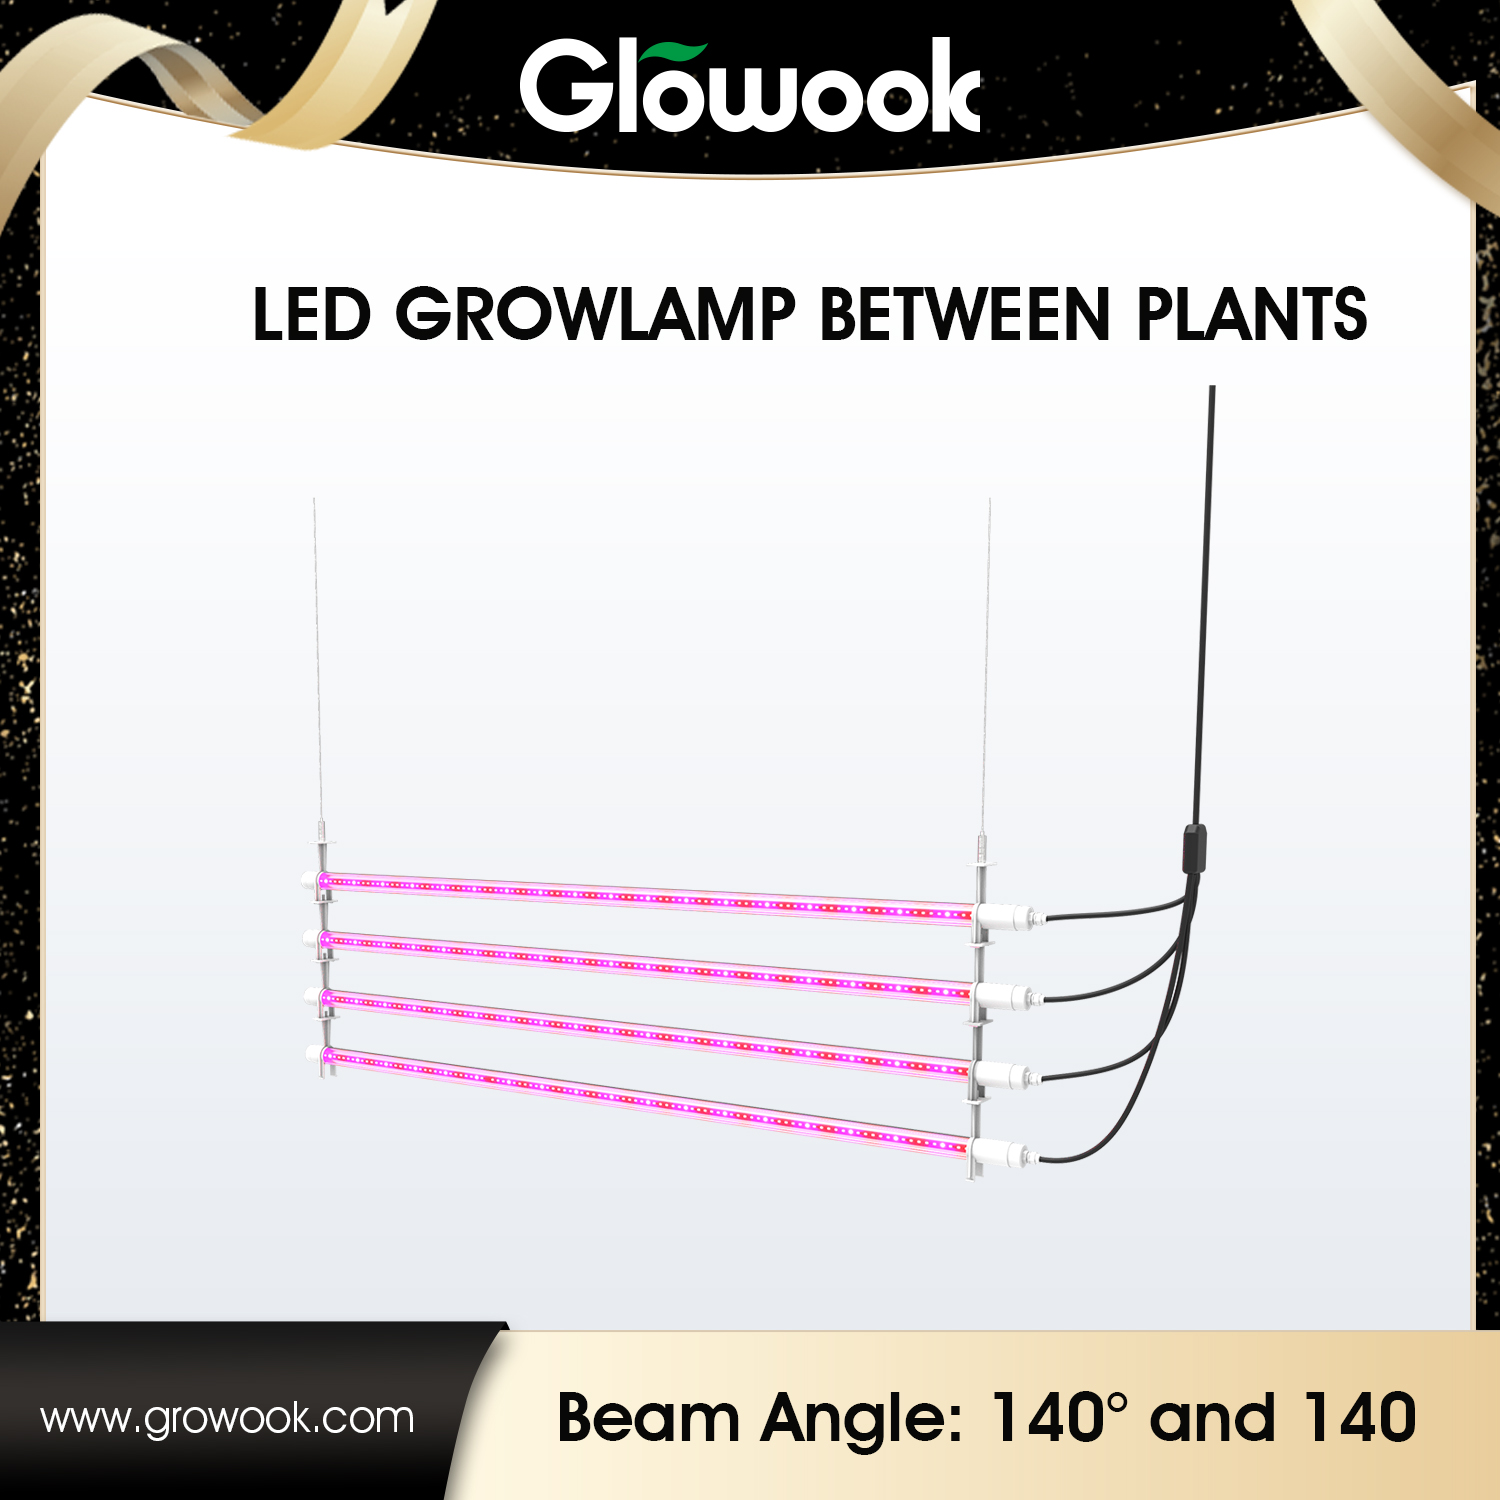 LED Growlamp between Plants Featured Image